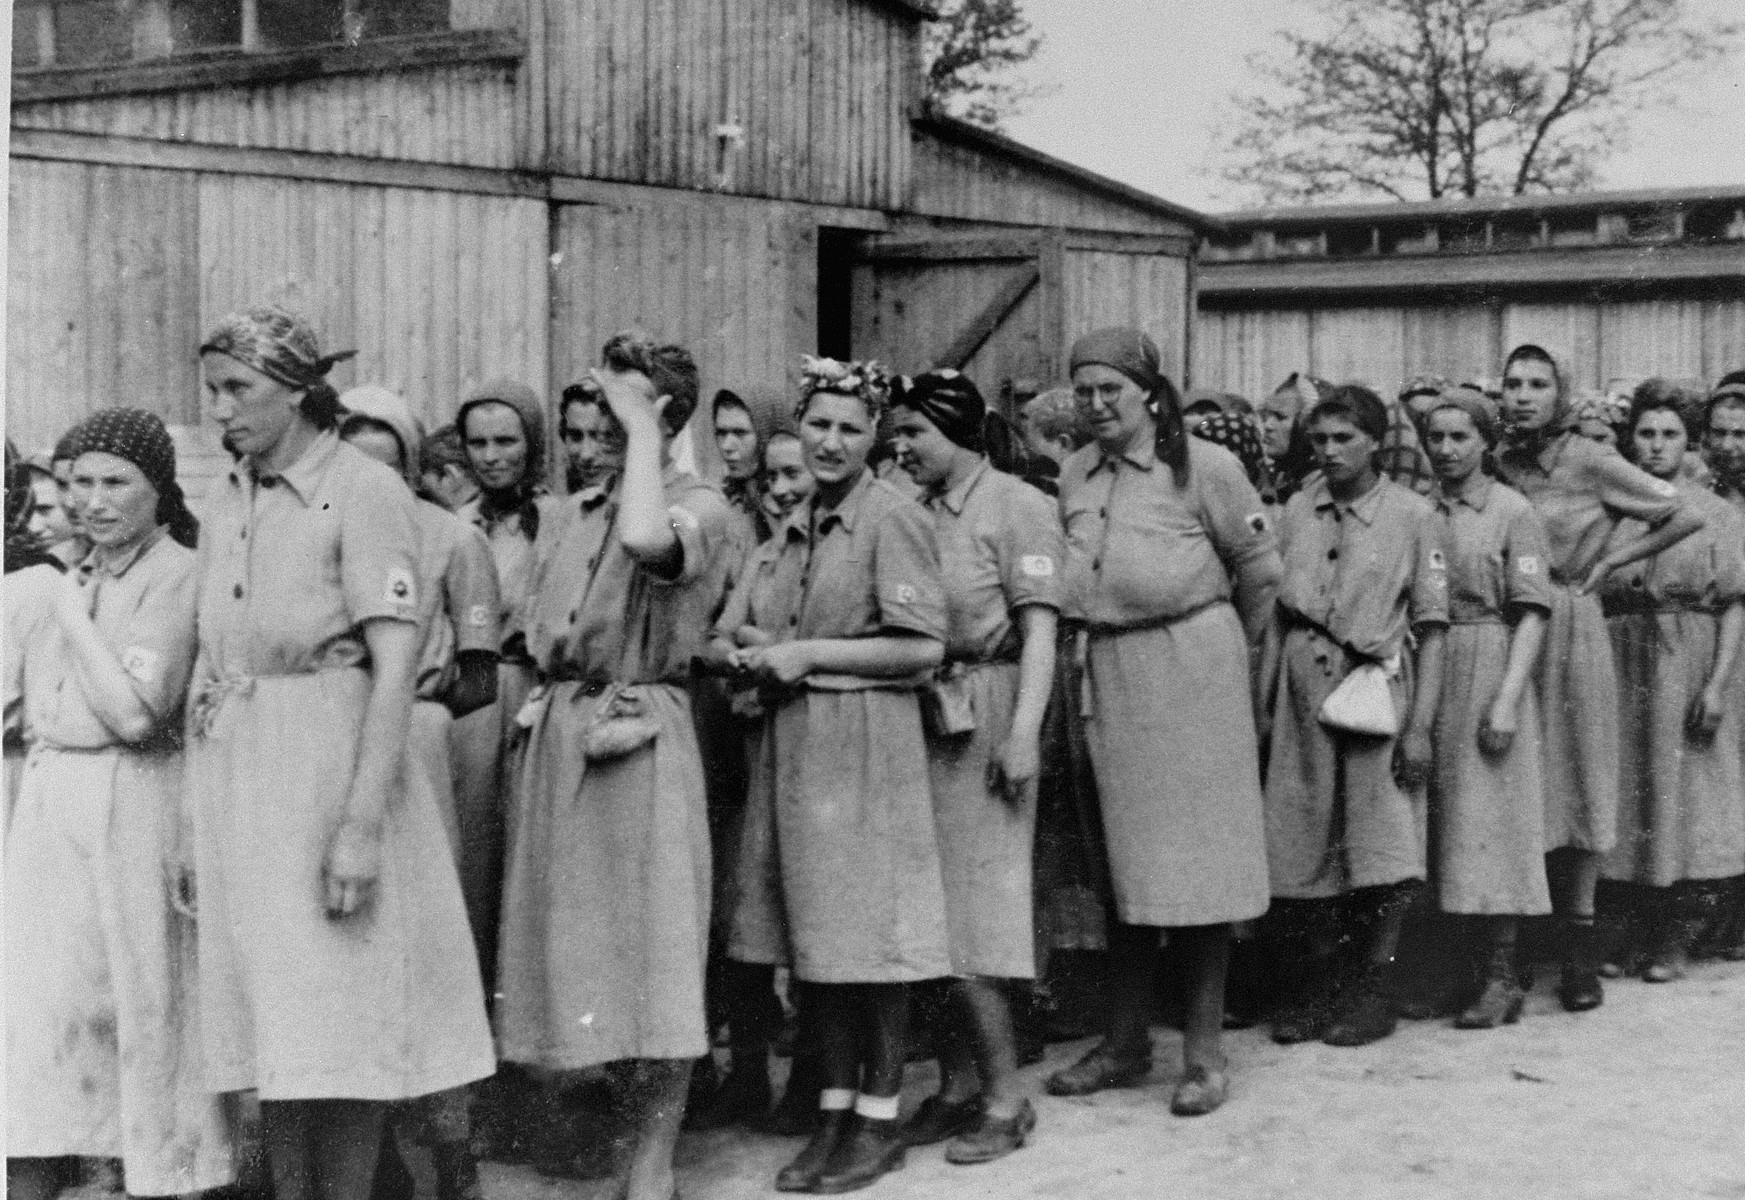 Jewish women from Subcarpathian Rus who have been selected for forced labor at Auschwitz-Birkenau, march toward their barracks after disinfection and headshaving.  Those pictured include Olga Rieder and her sister, Rozi Feldman, Suri Birnbaum, Fradi Birnbaum, Cilli Hochmann, Maidi Birnbaum, and Piri Birnbaum.  The Birnbaum sisters were singers who occassionally performed for the Germans in the camp.